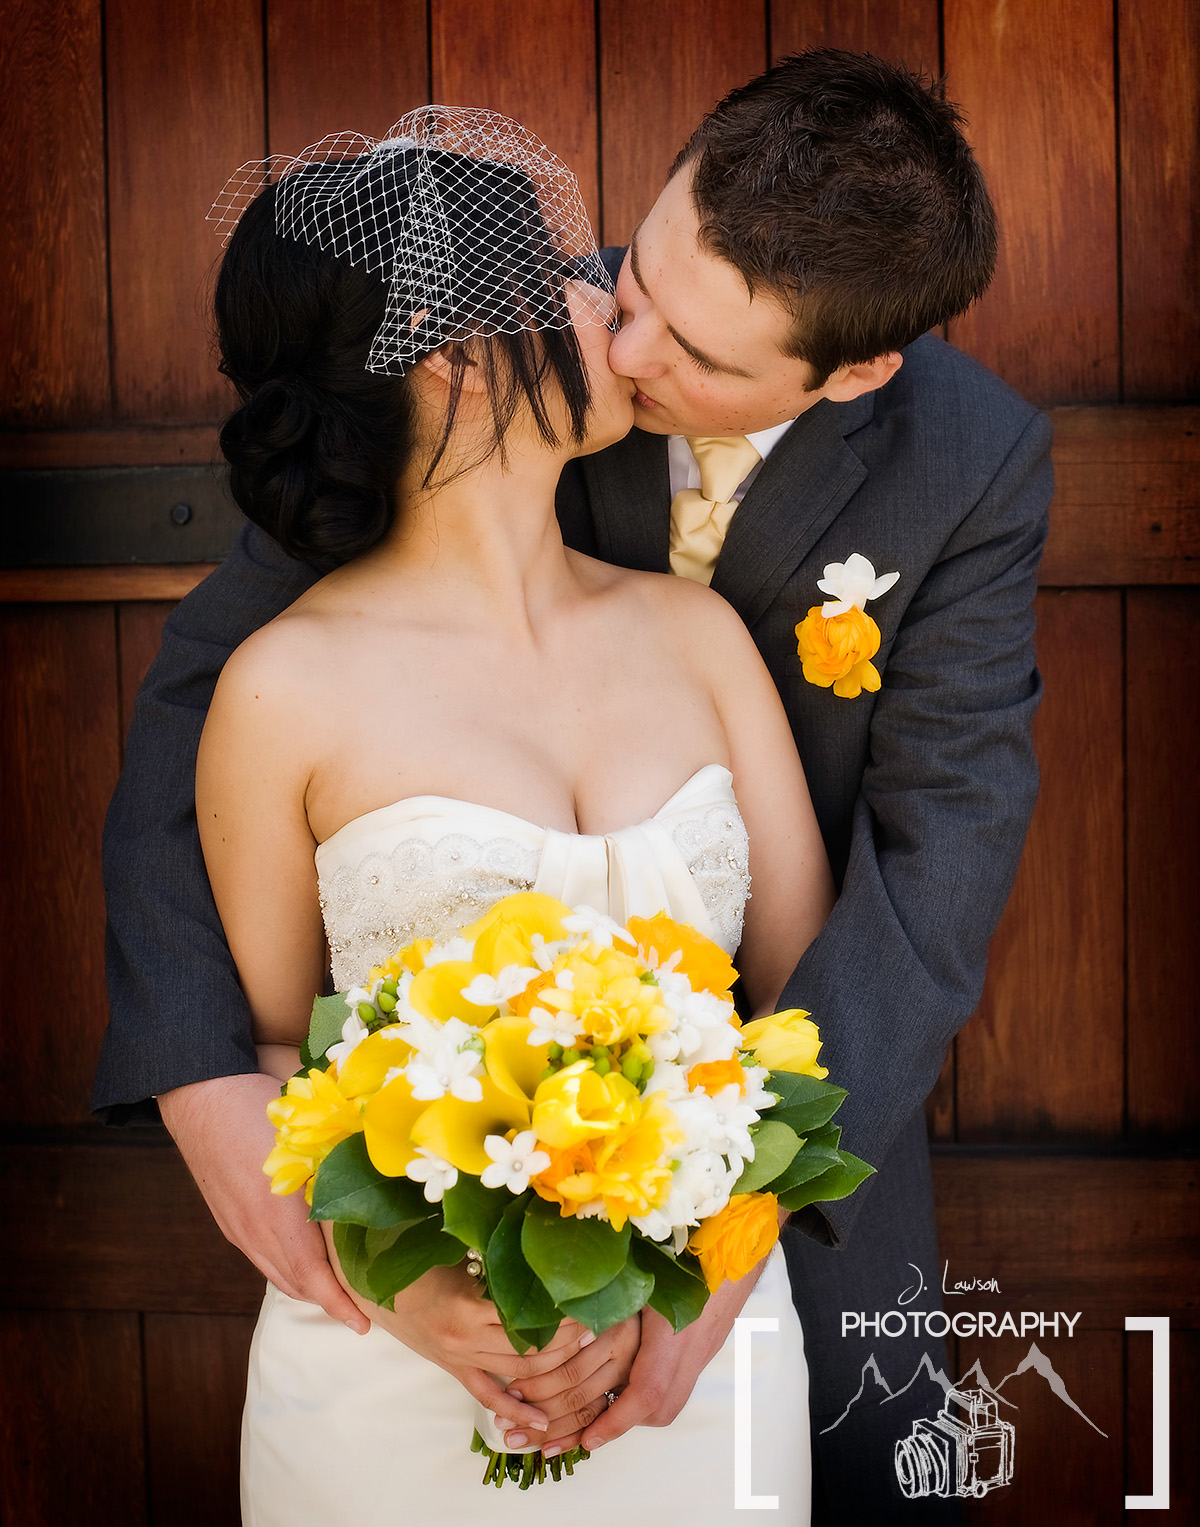 Wedding Photography Questions. Photo Credit: Jared Lawson Photography